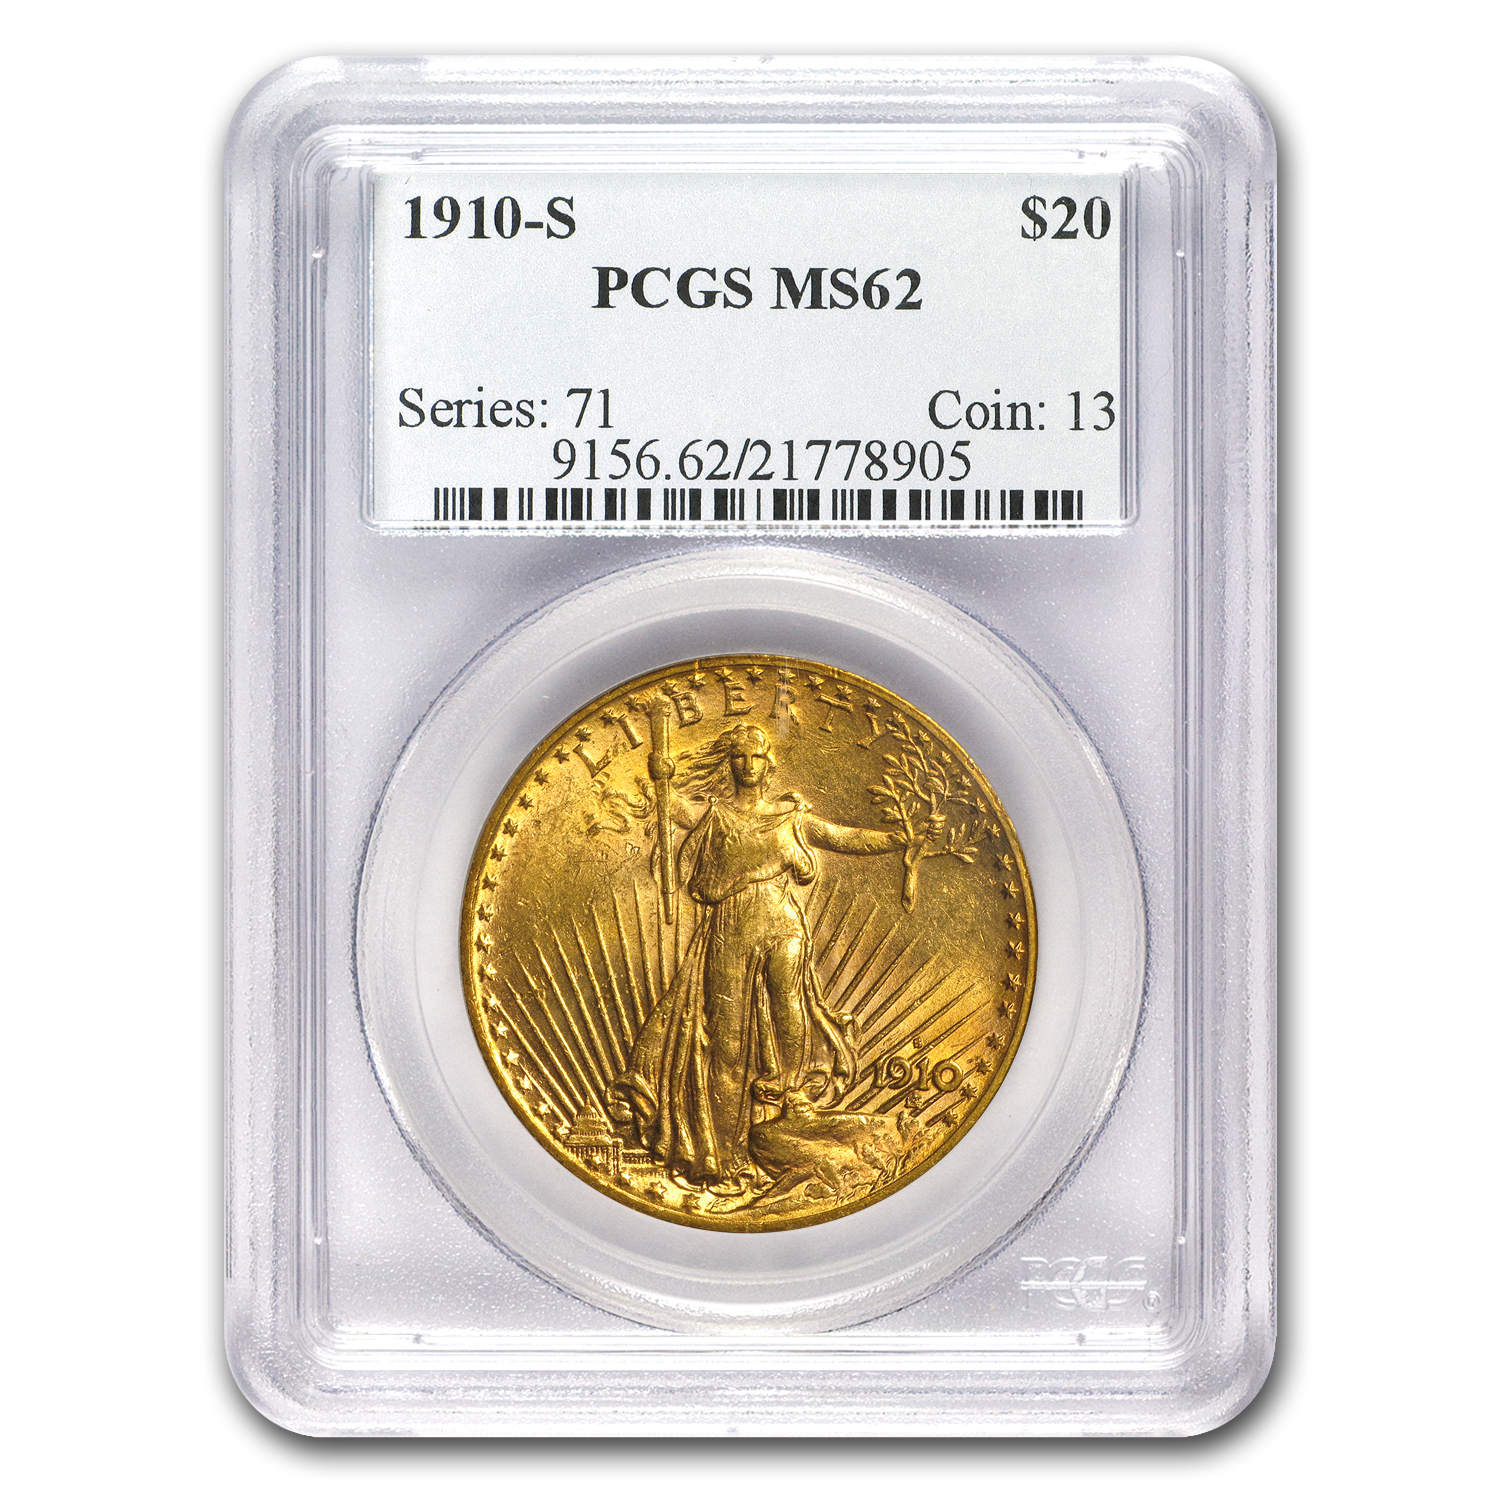 1910-S $20 St. Gaudens Gold Double Eagle - MS-62 PCGS